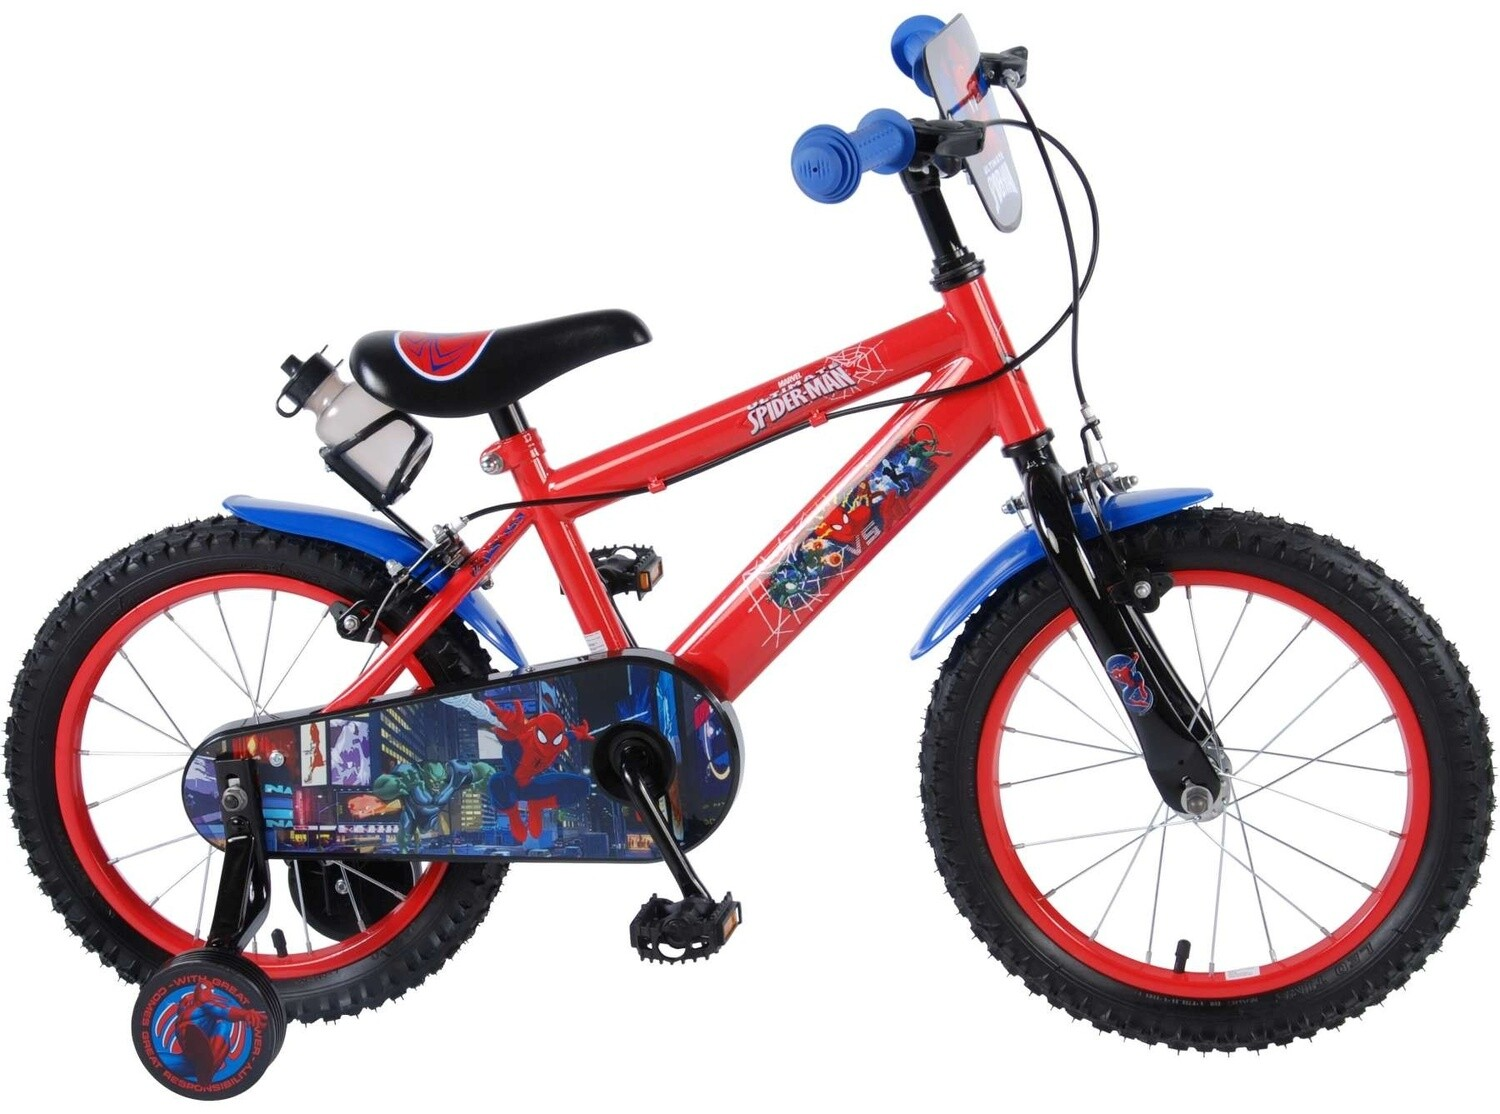 Kinder-Fahrrad Velo Marvel Spiderman 16 Zoll 25,4 cm Jungen Felgenbremse Rot